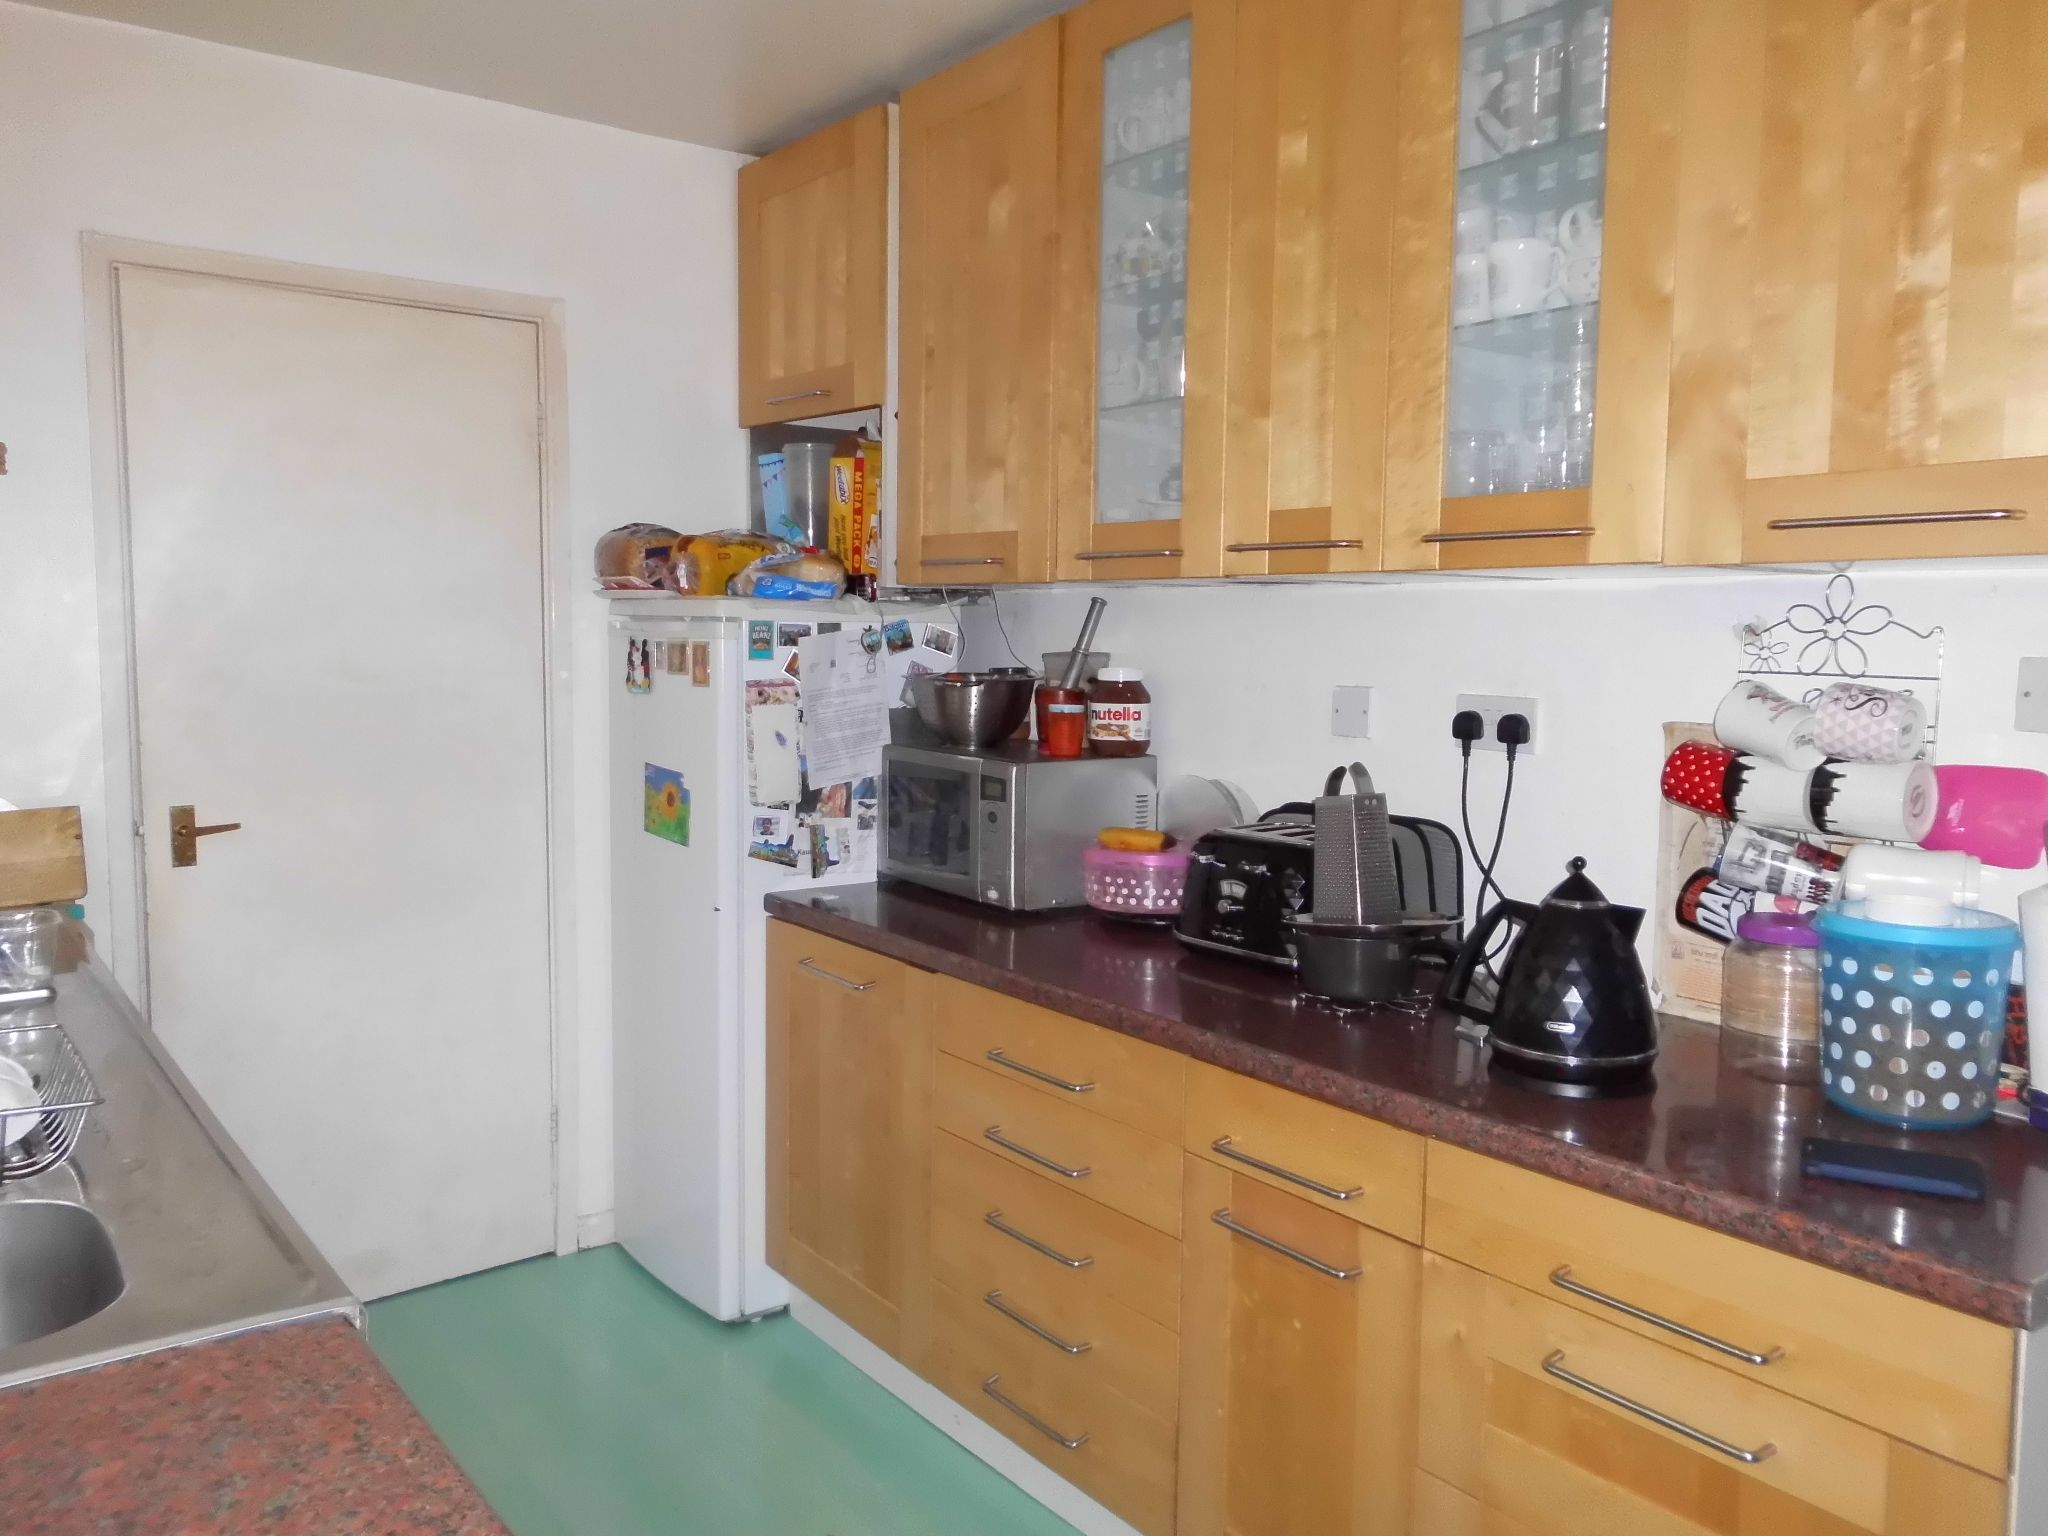 3 bedroom semi-detached house For Sale in Oadby And Wigston - Photograph 6.